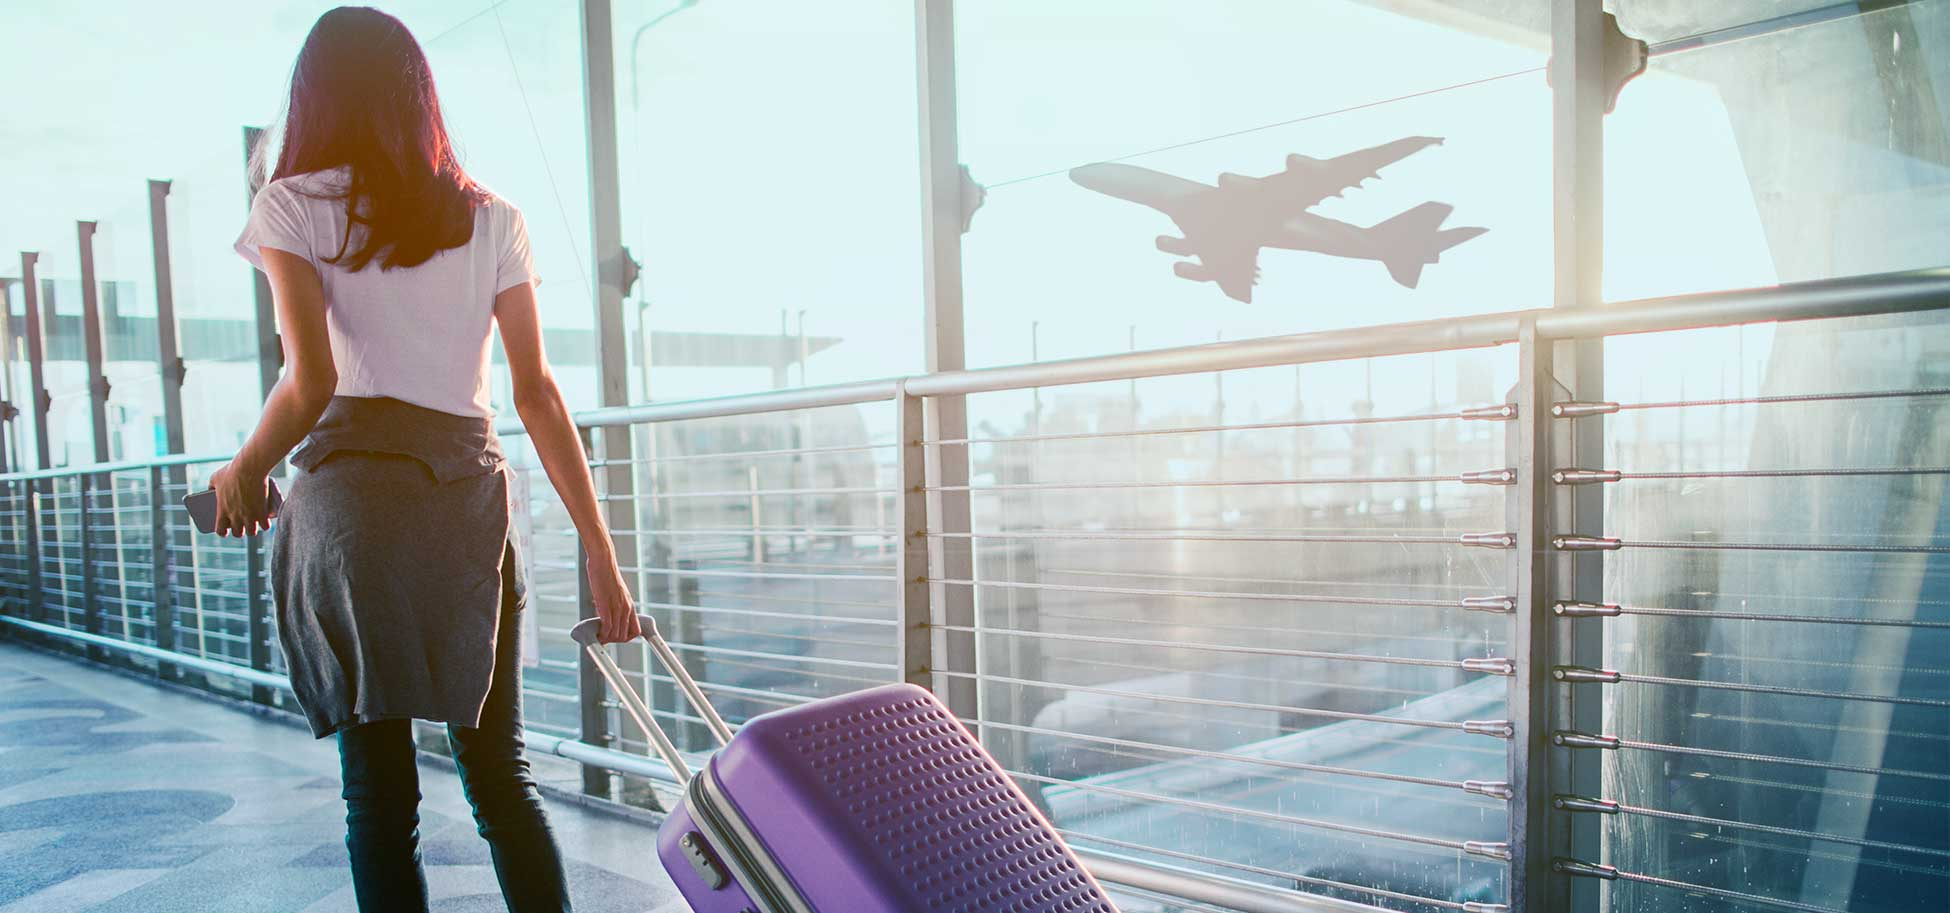 Air Travel Volatility - Three Ways Airports Can Beat the Uncertainty